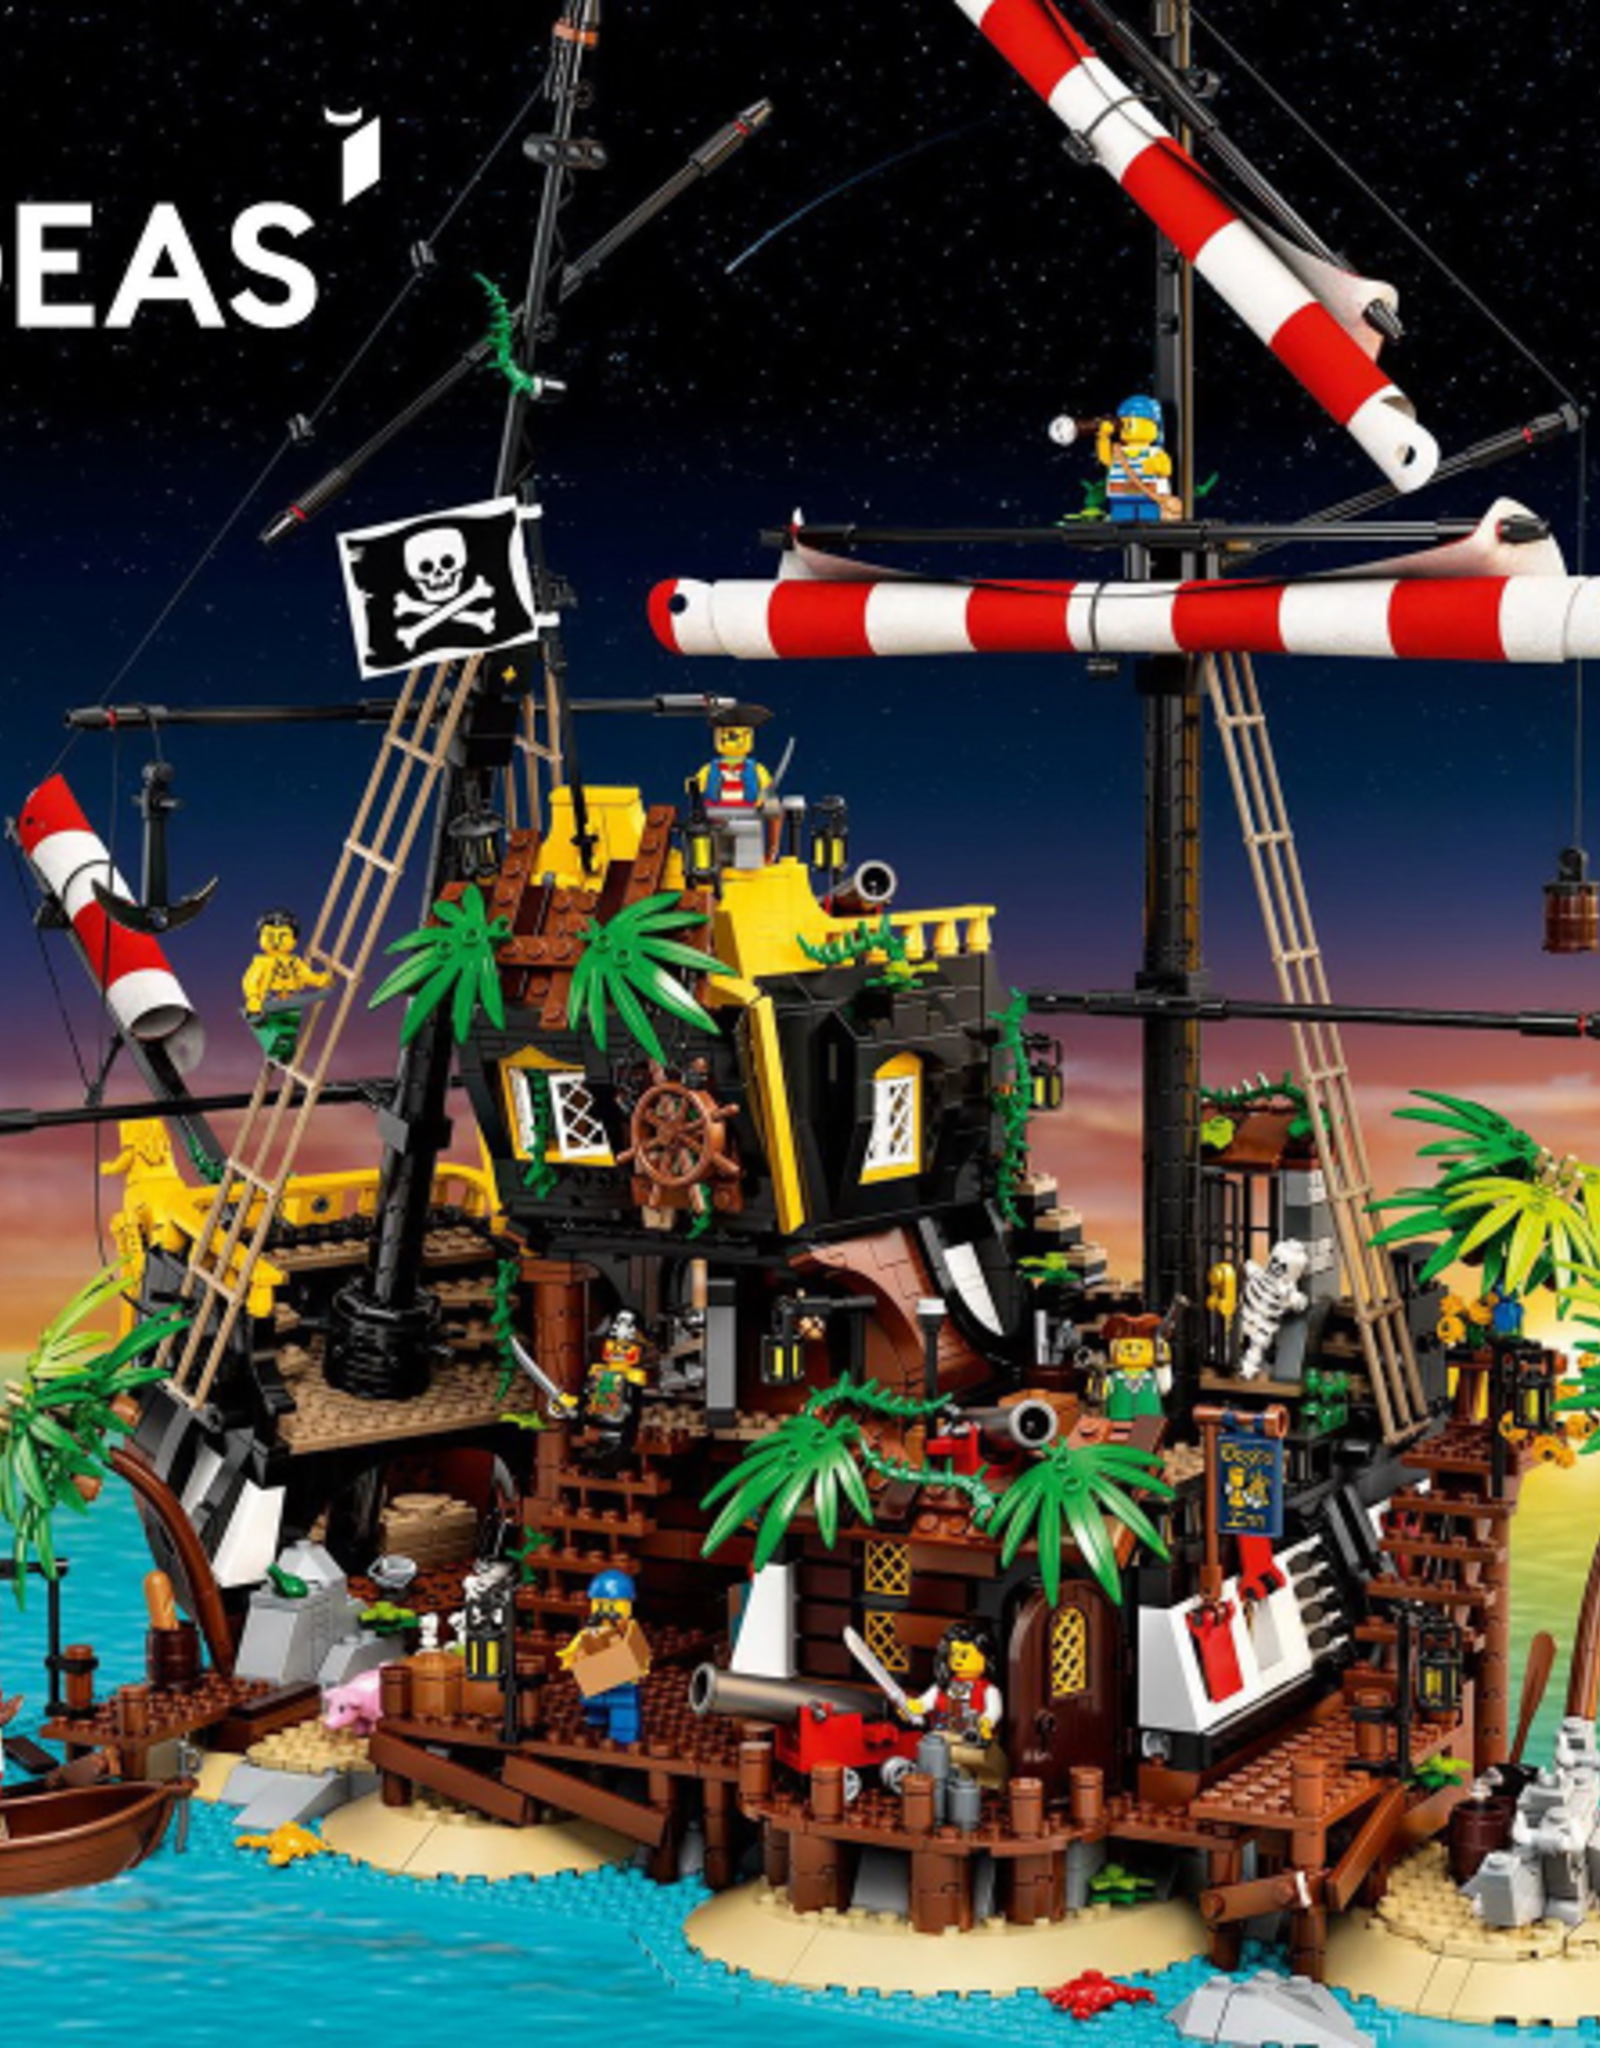 LEGO LEGO 21322 Pirates of Barracuda Bay IDEAS